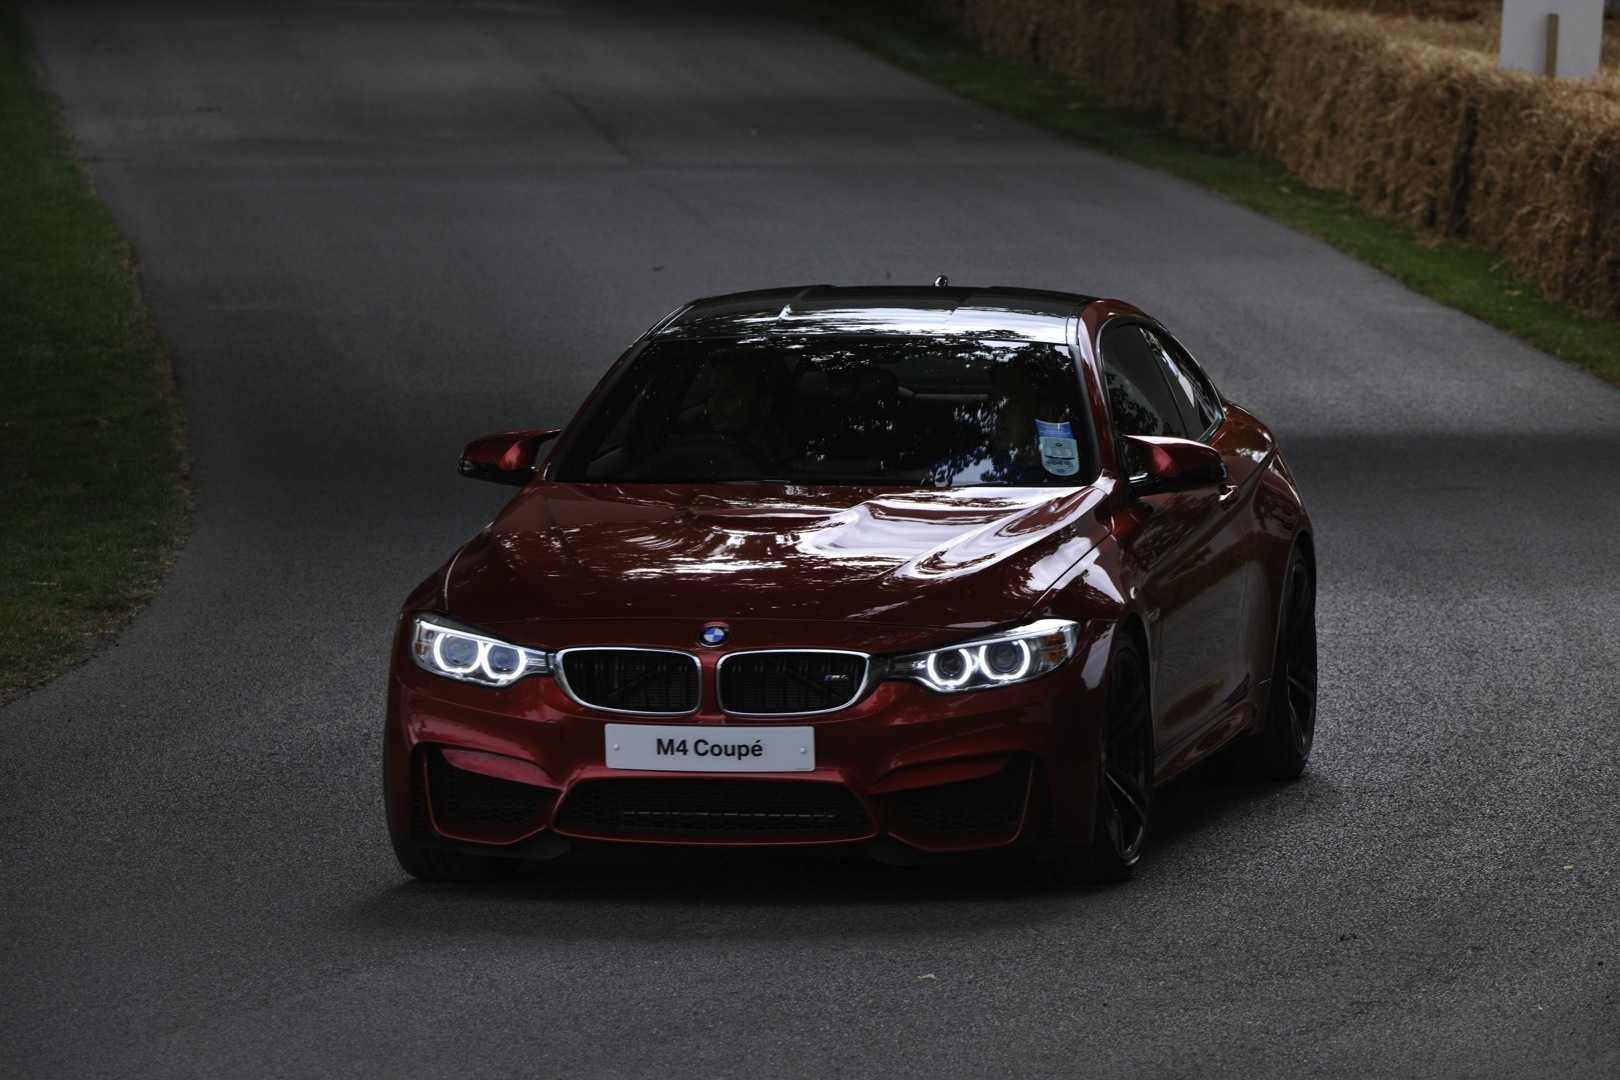 Most Wanted BMW M4 Sports Coupe to be Released Soon in the U.S.